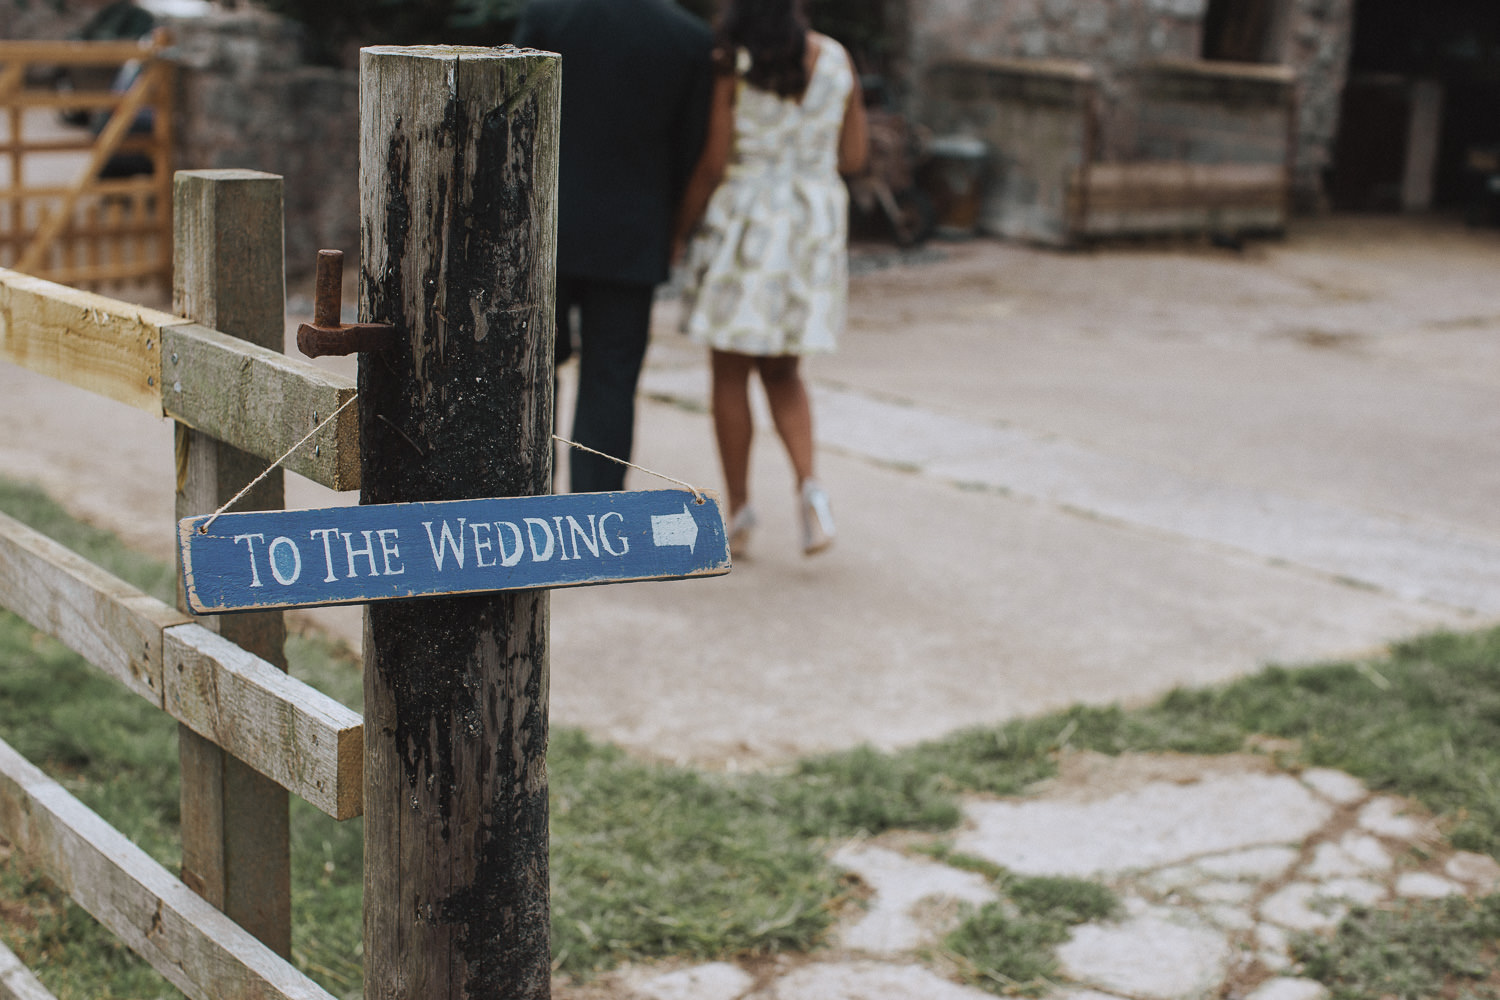 A sign as a wedding saying 'to the wedding'